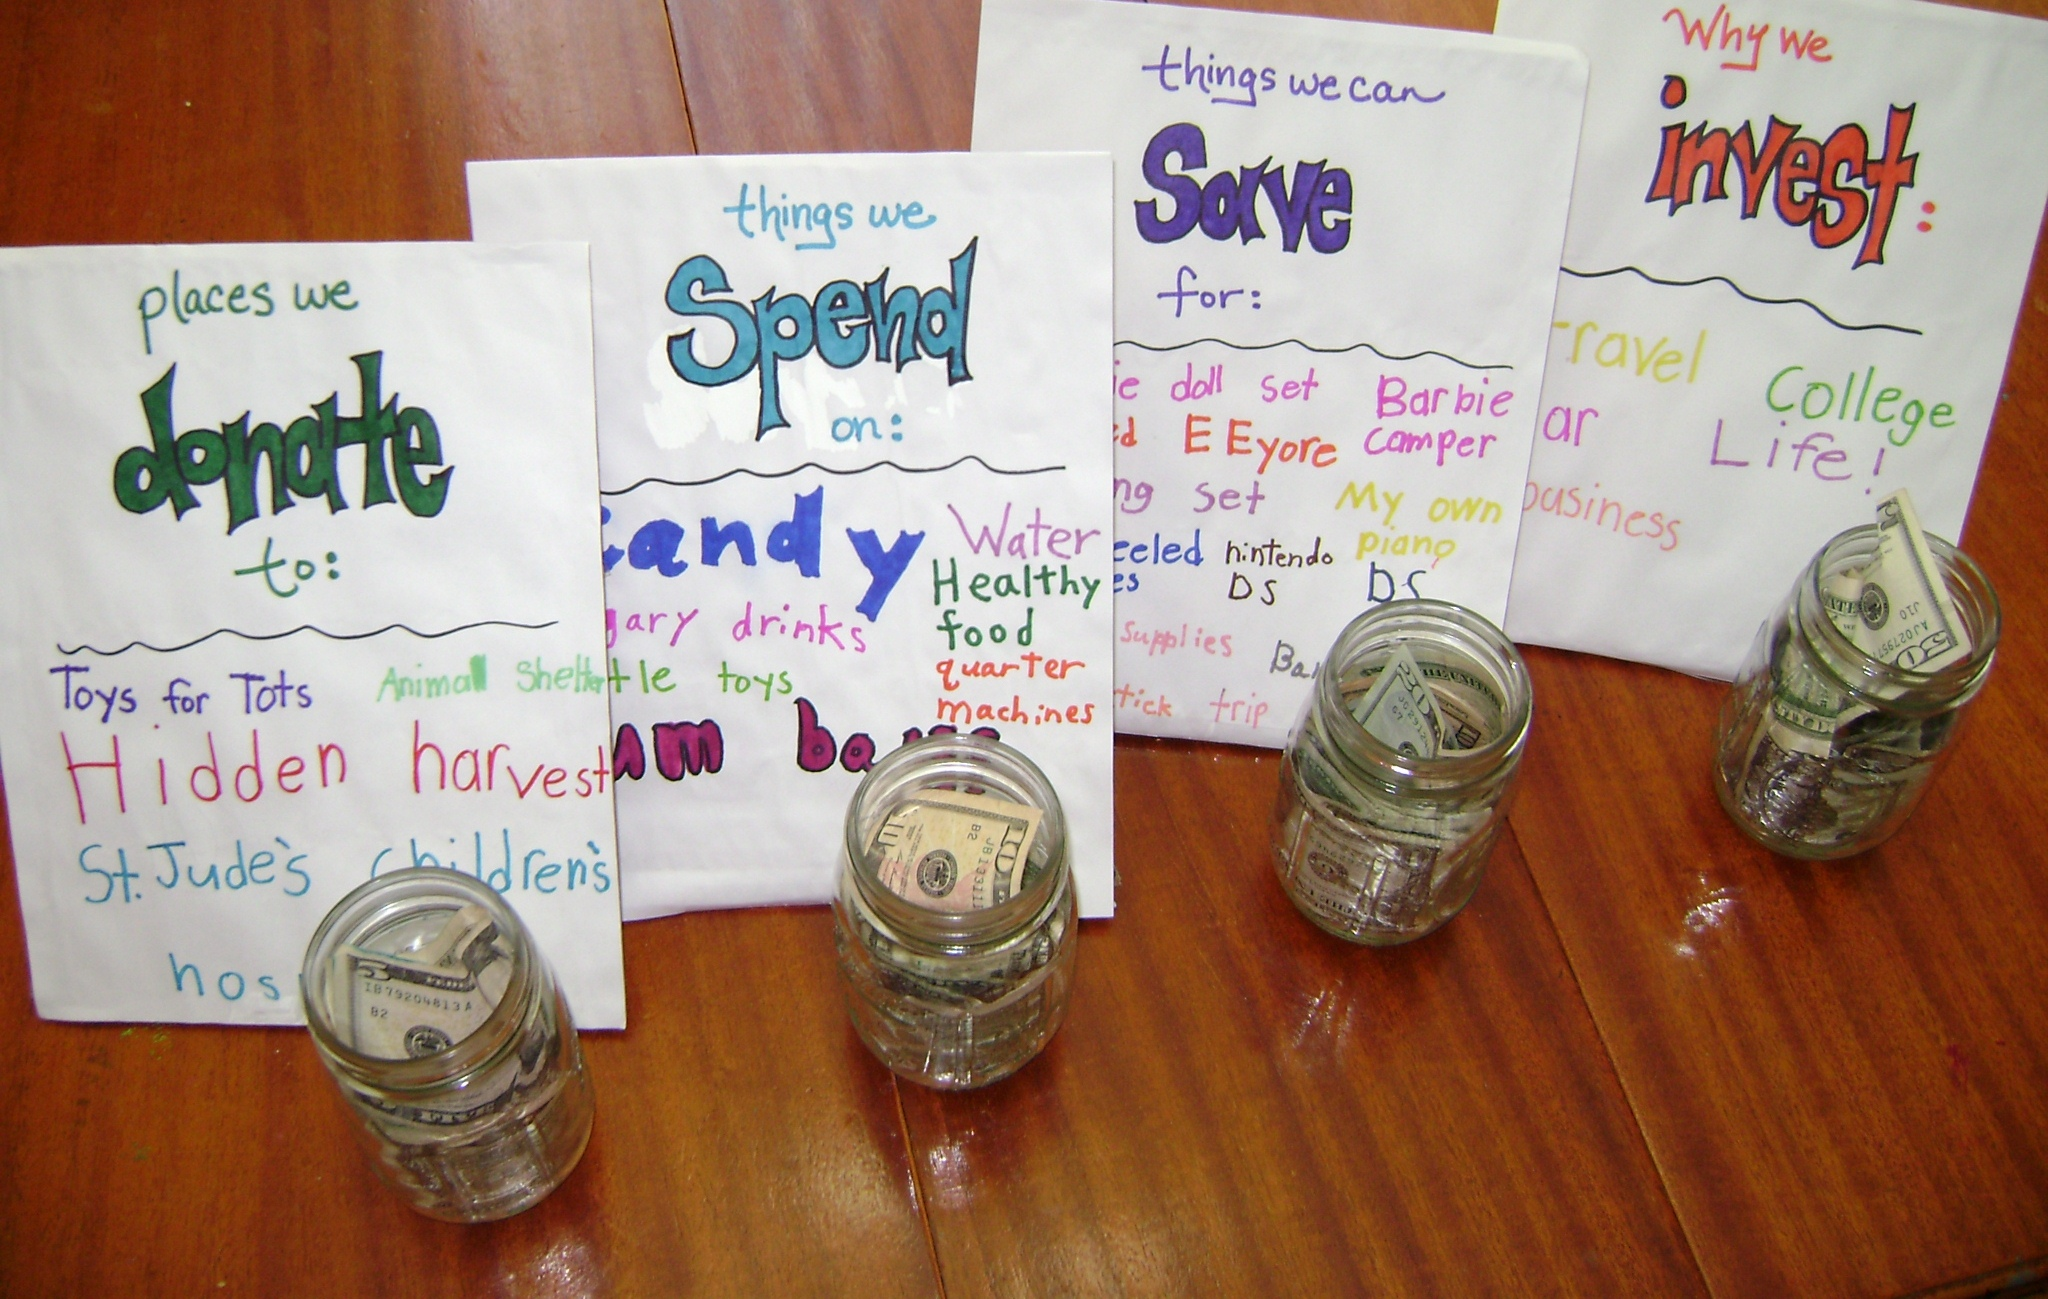 Teaching kids to save – and spend – money wisely